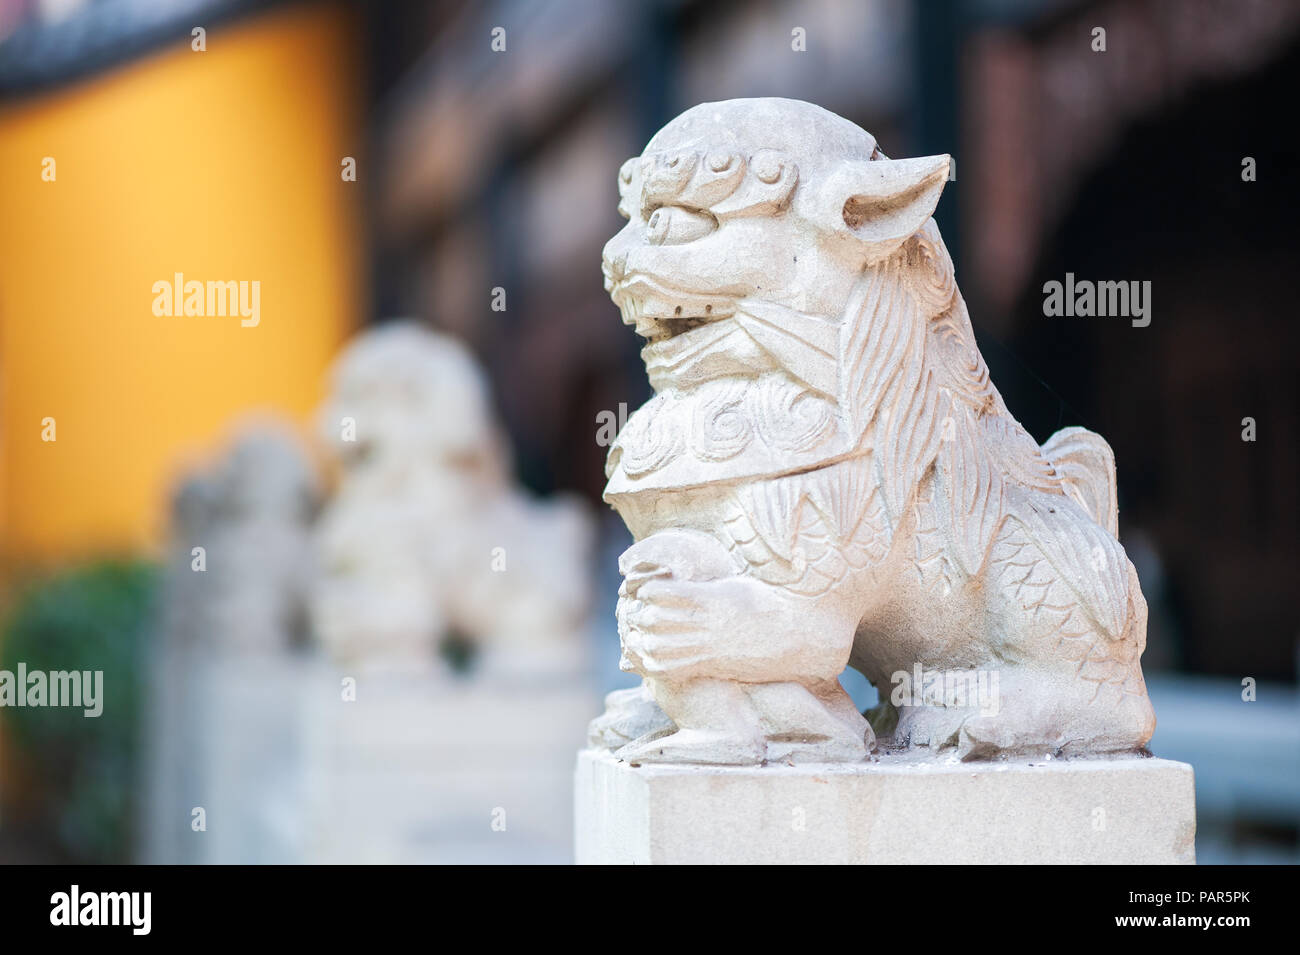 Lion white stone statue in a buddhist temple, Chongqing, China - Stock Image